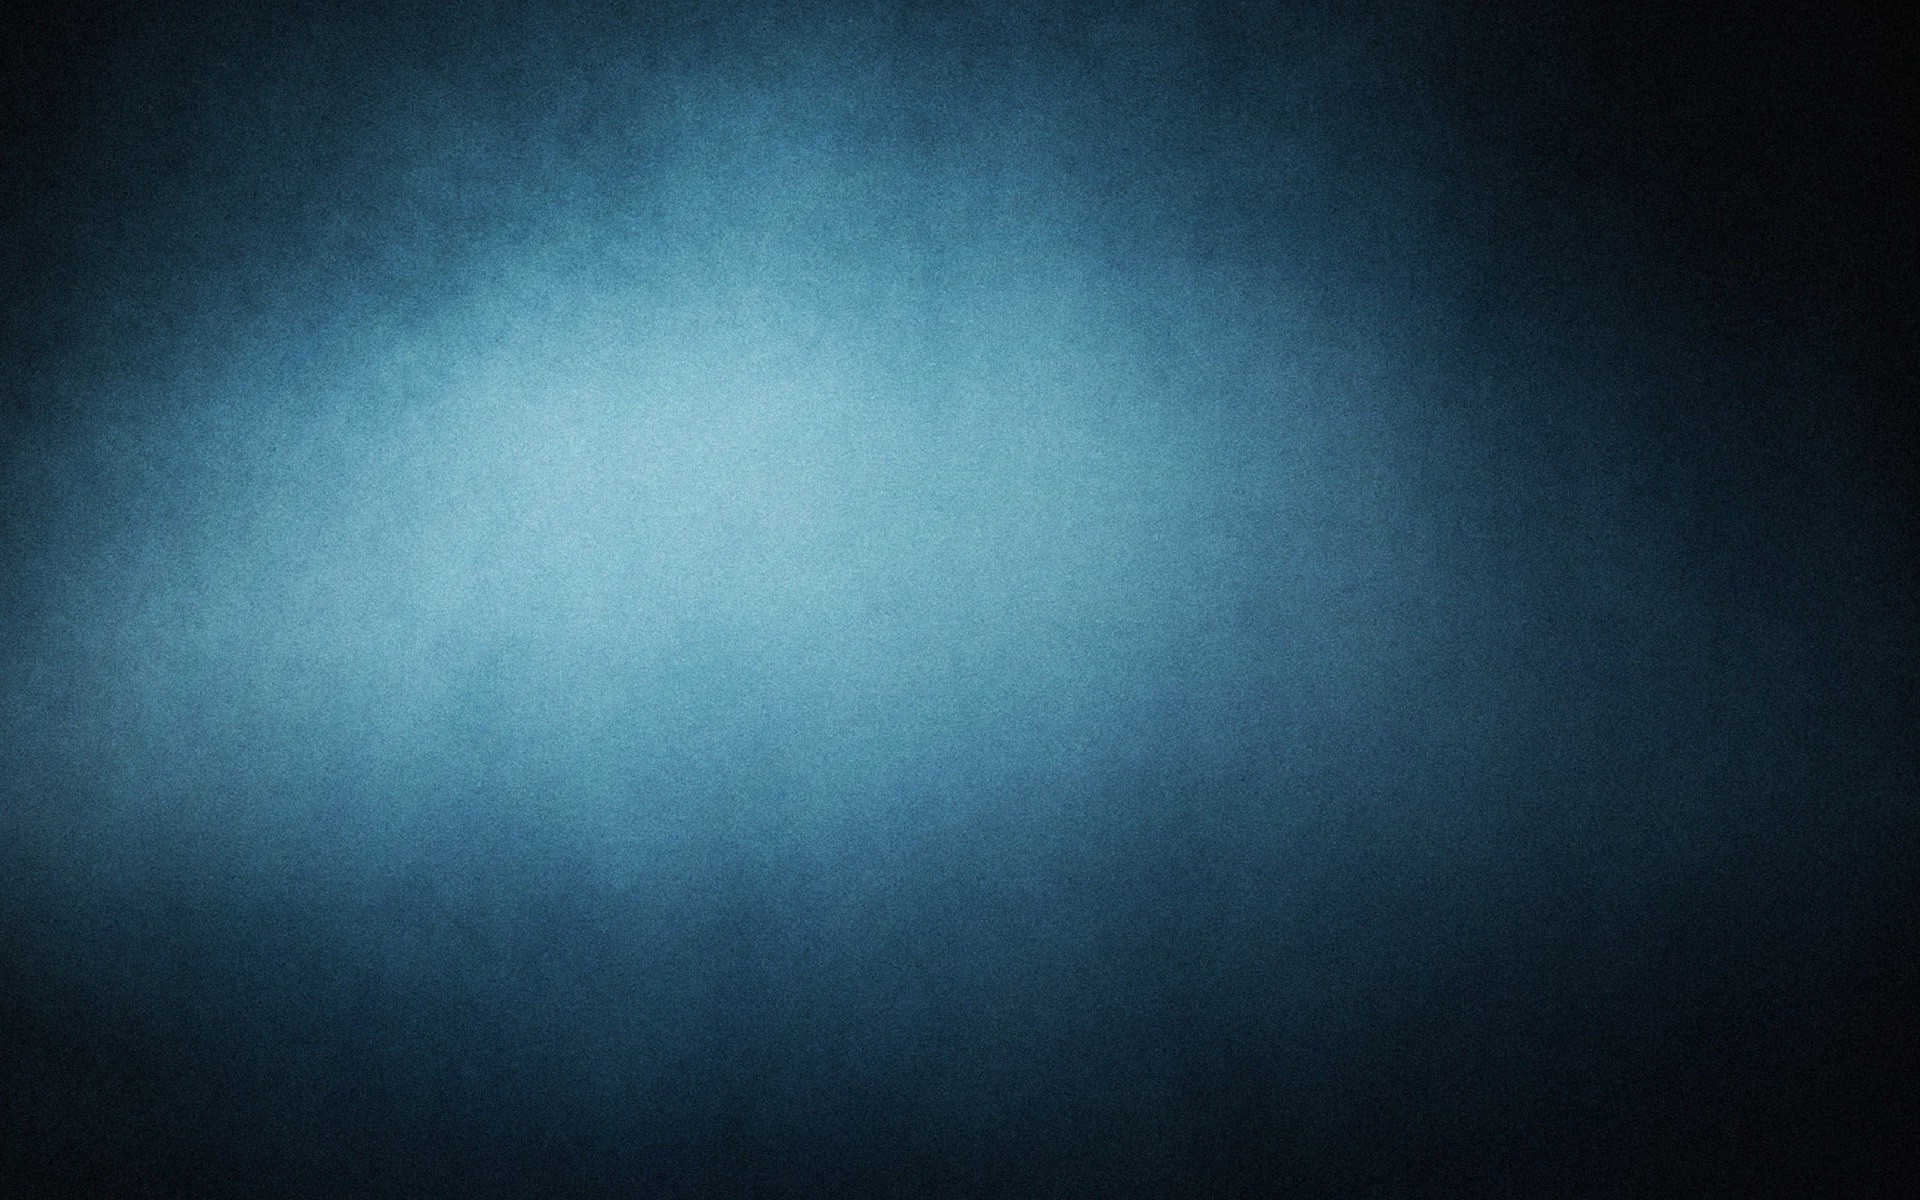 navy-blue-and-dark-full-hd-wide-plain-wallpapers